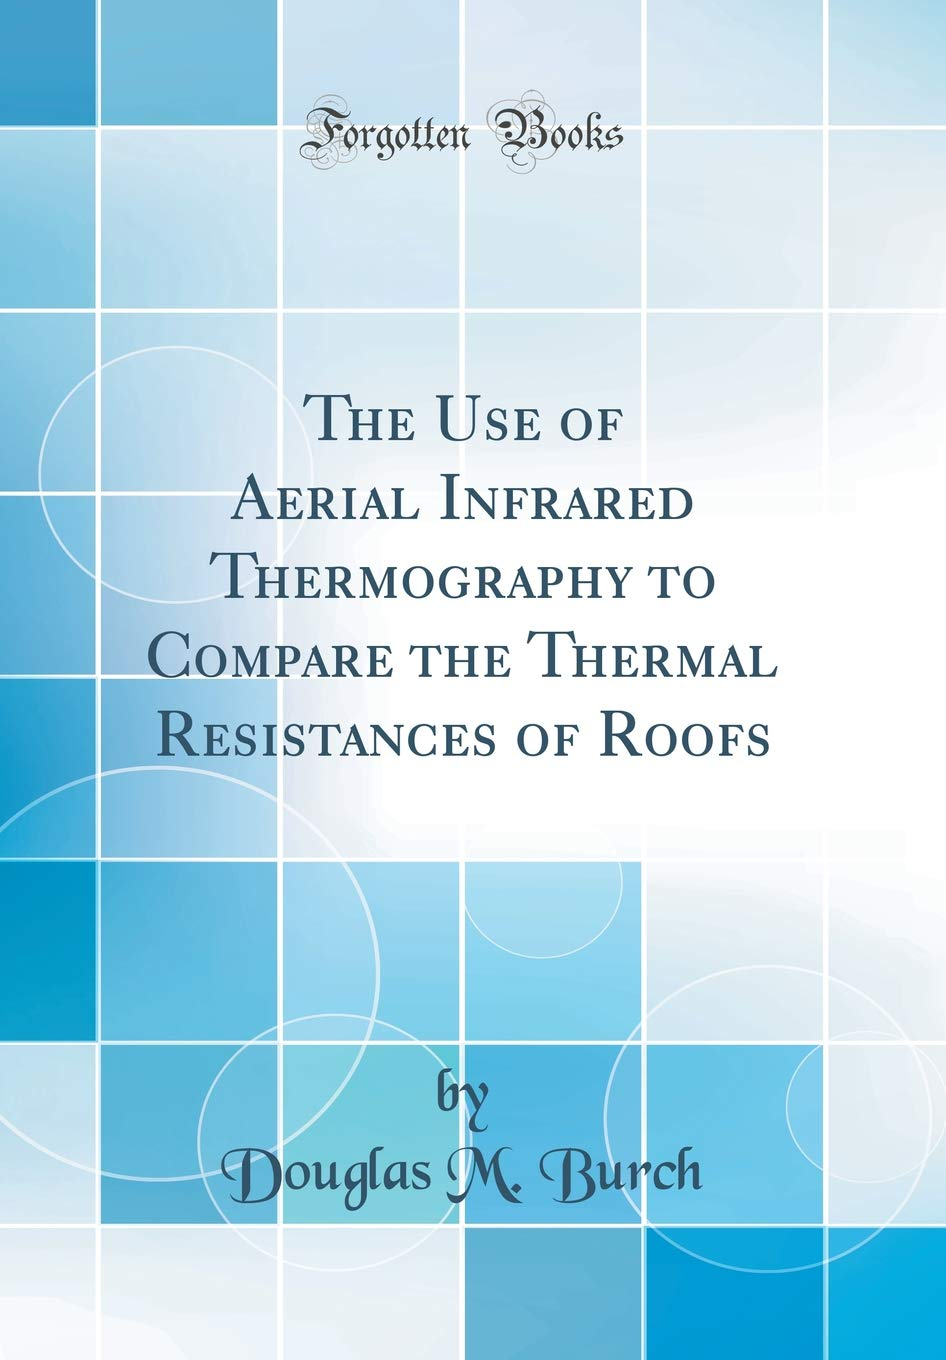 8b42752d560a The Use of Aerial Infrared Thermography to Compare the Thermal Resistances  of Roofs (Classic Reprint) Hardcover – January 6